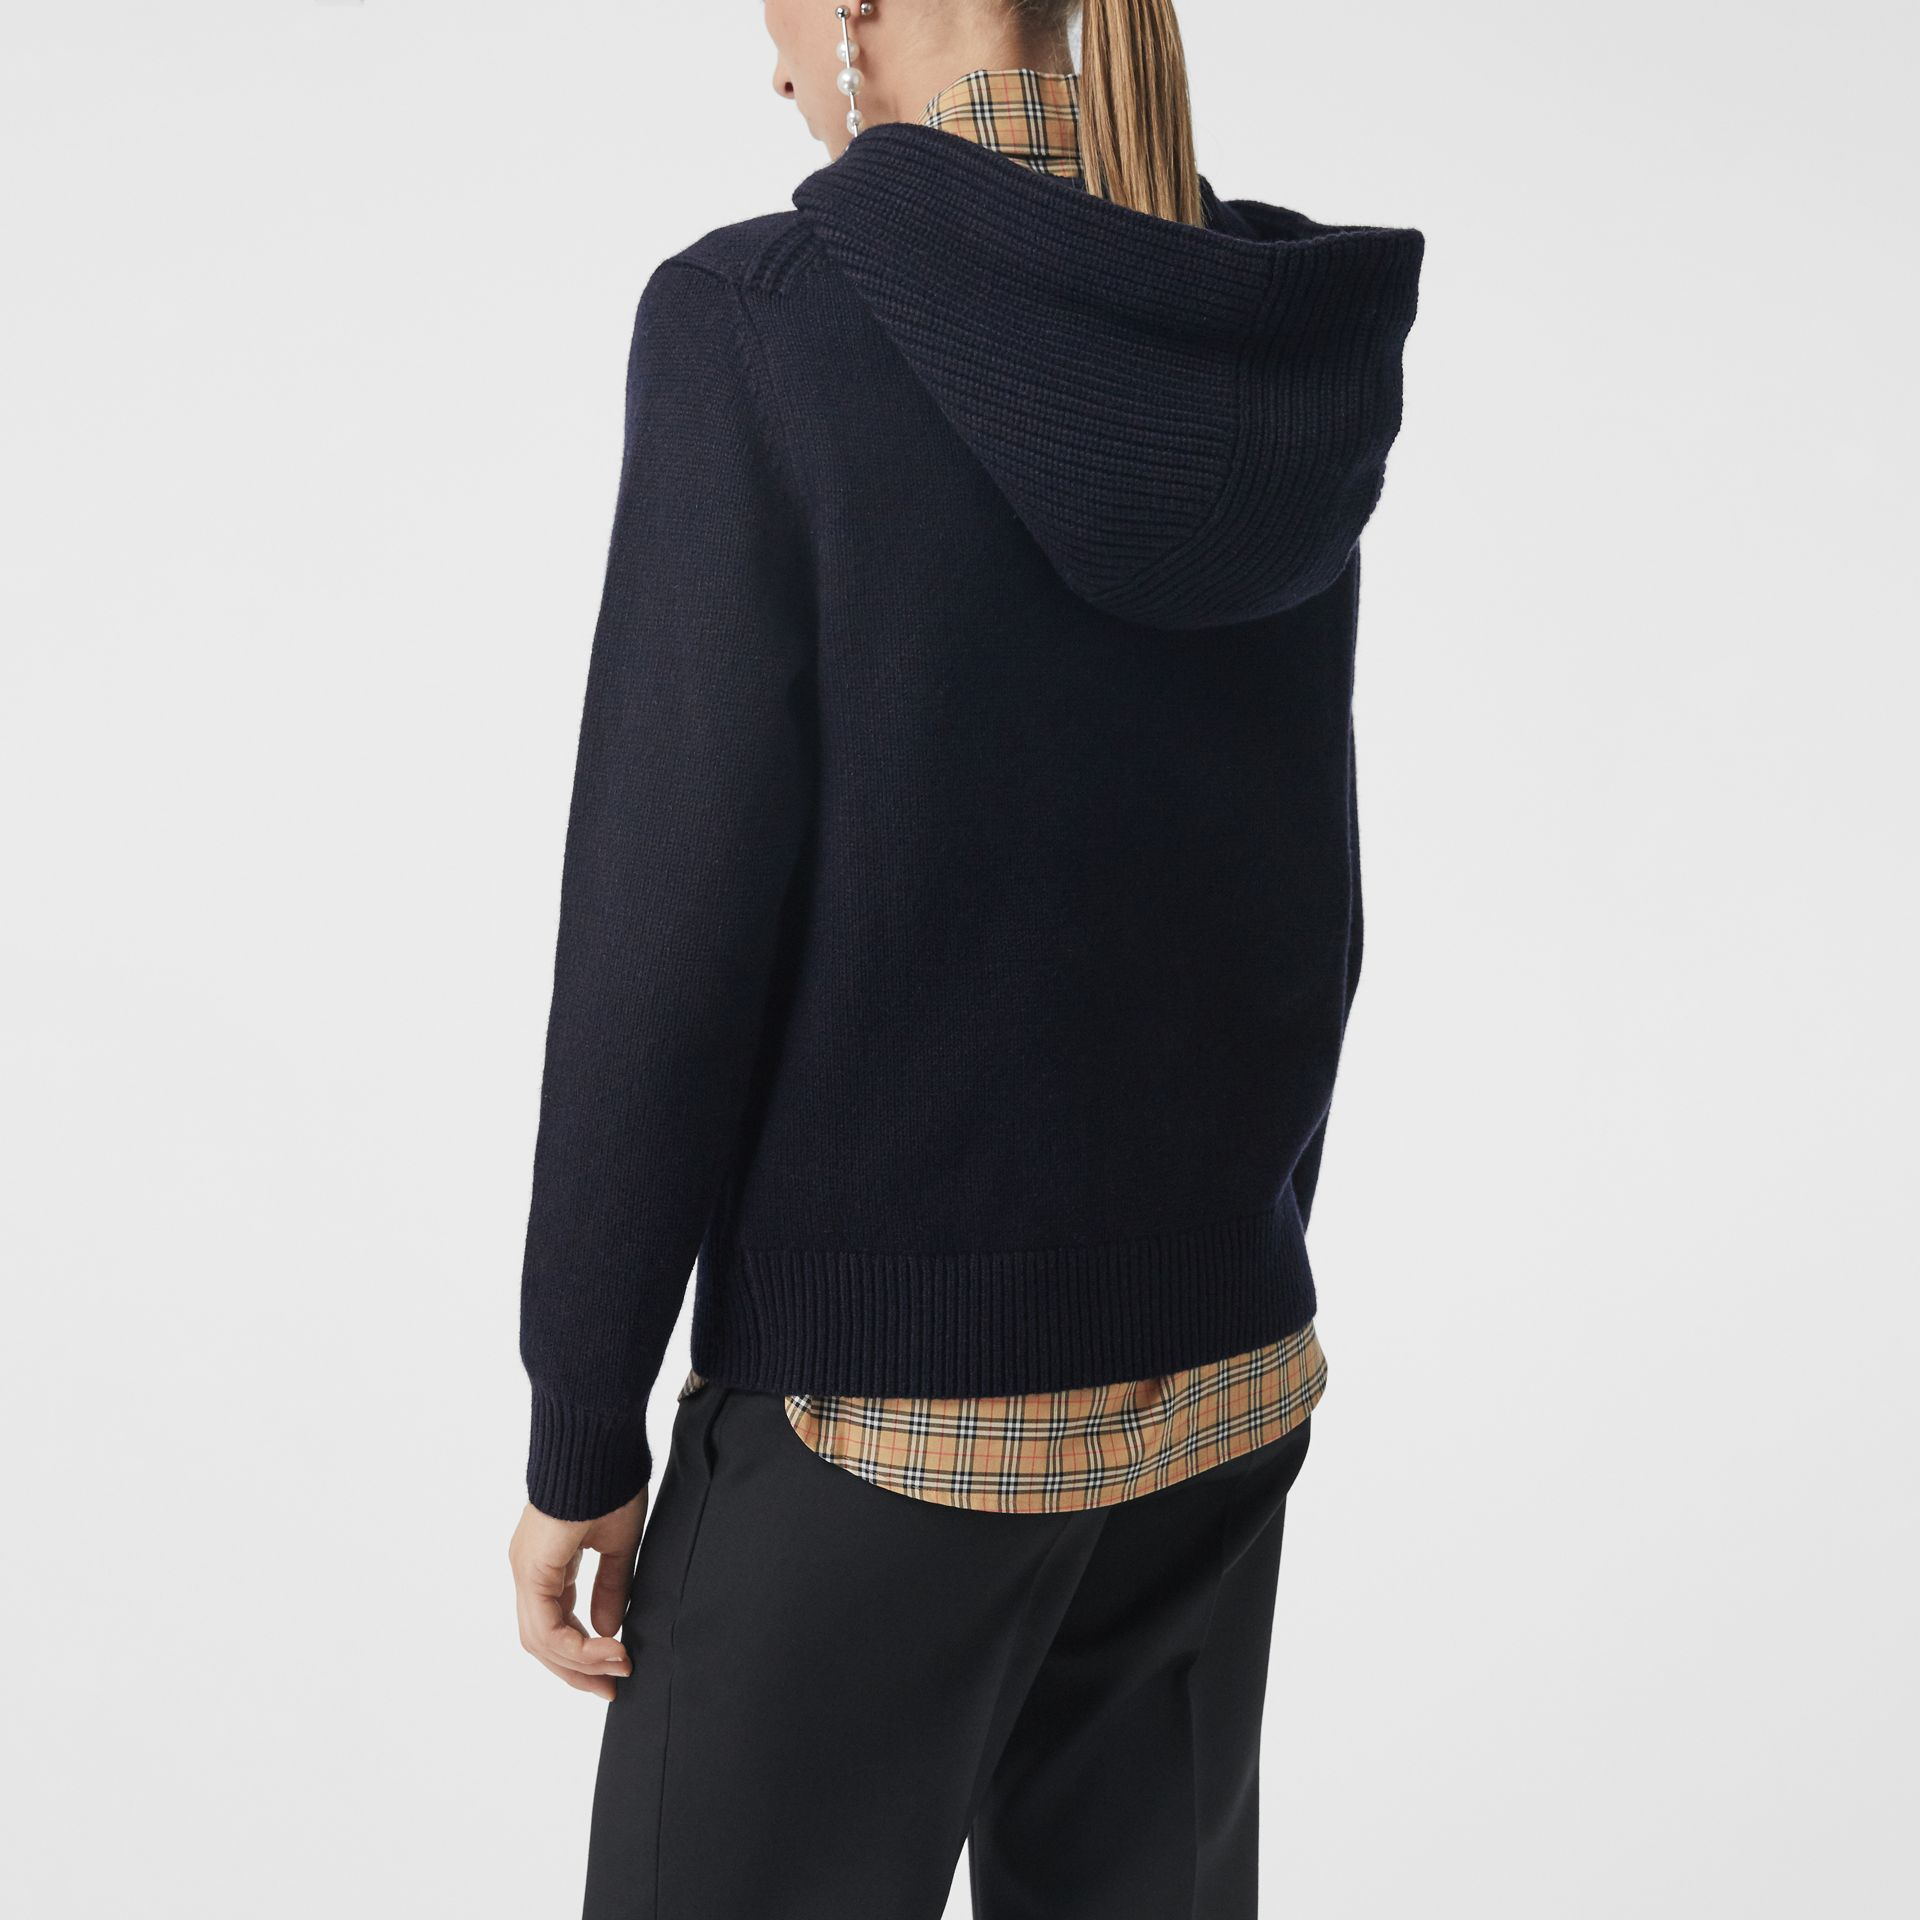 Embroidered Crest Cashmere Hooded Top in Navy - Women | Burberry United States - gallery image 2